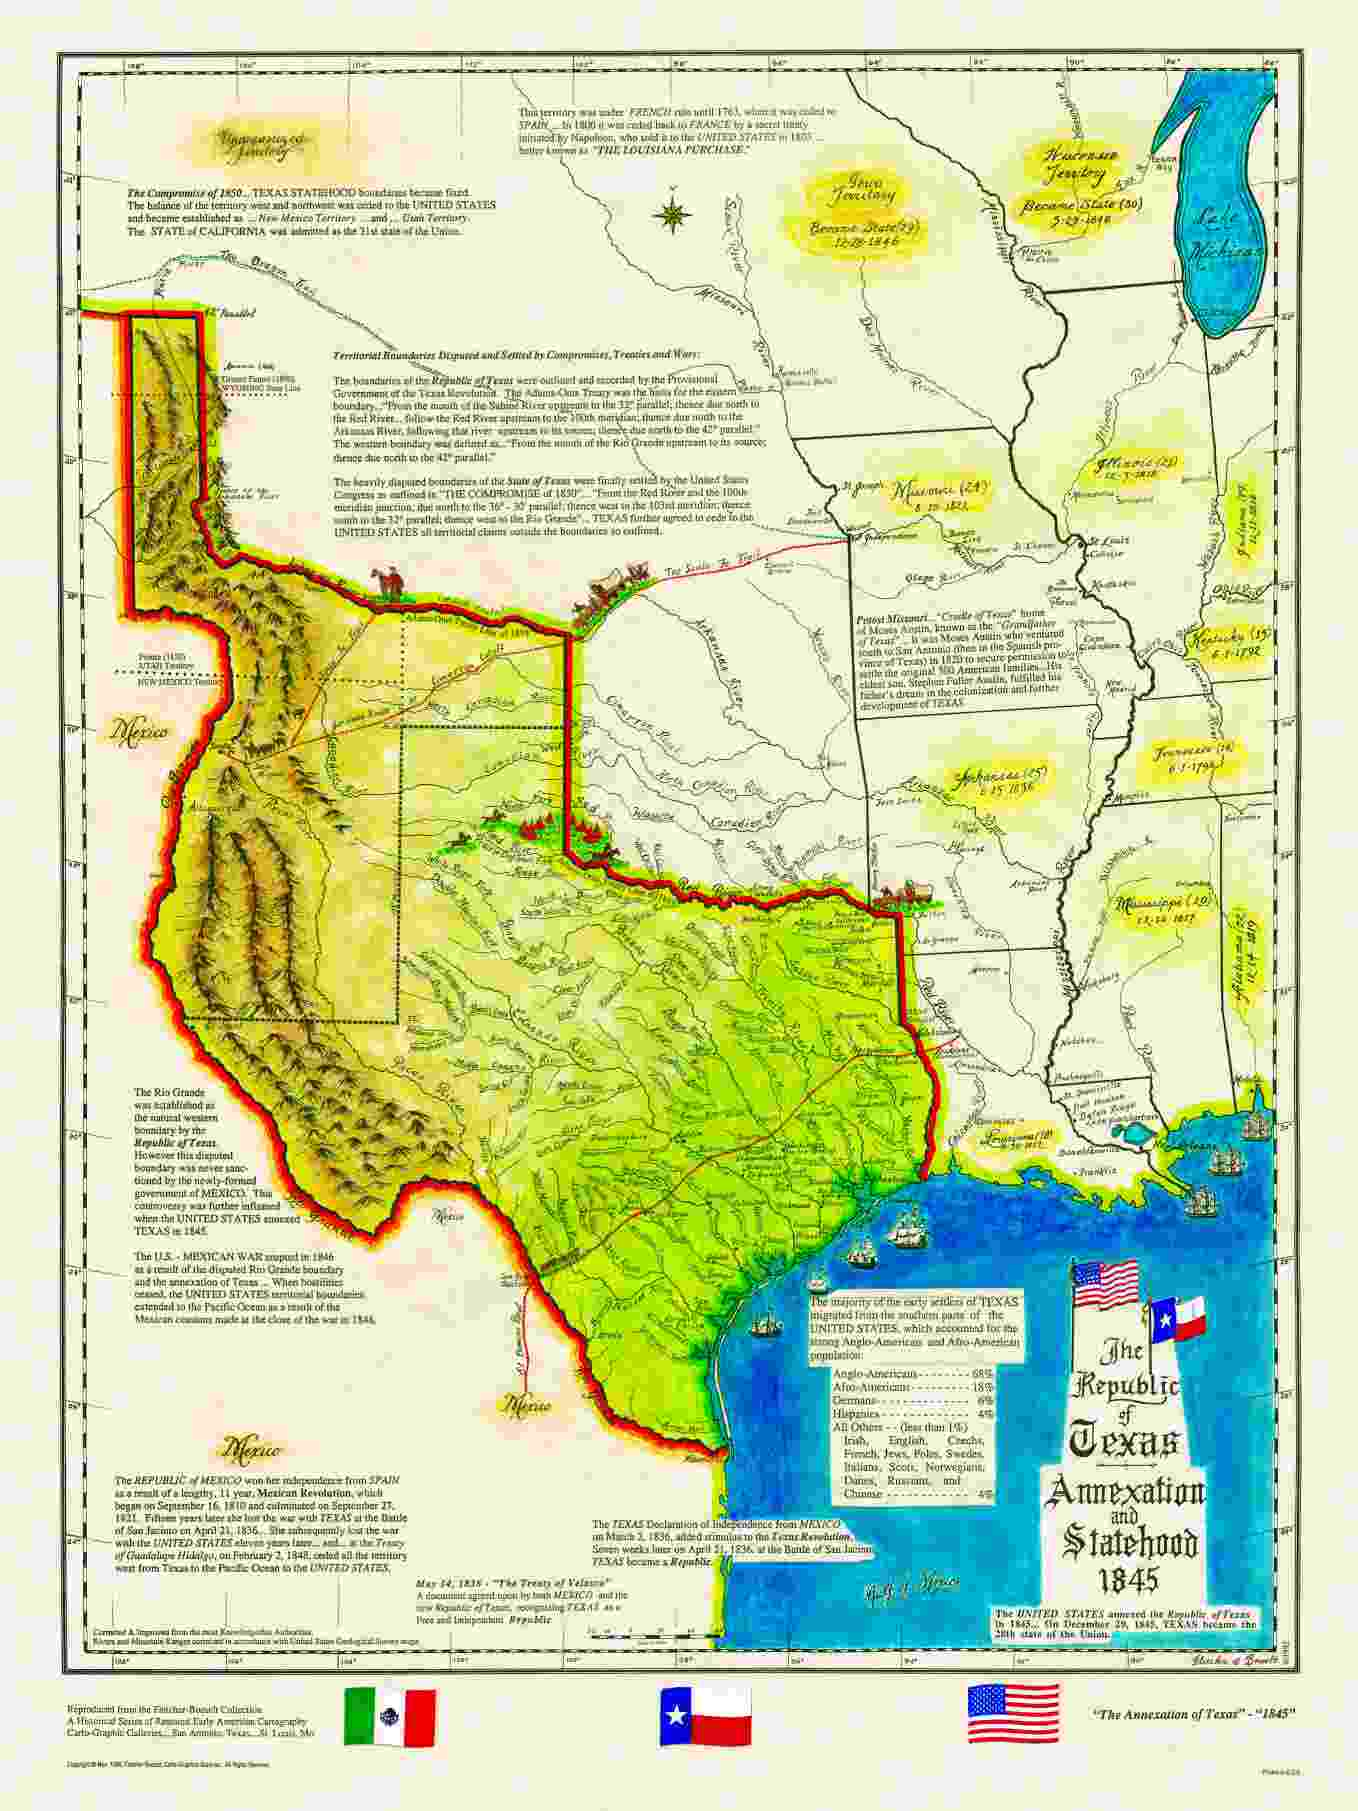 annexation and statehood of texas 1845 the rio grande